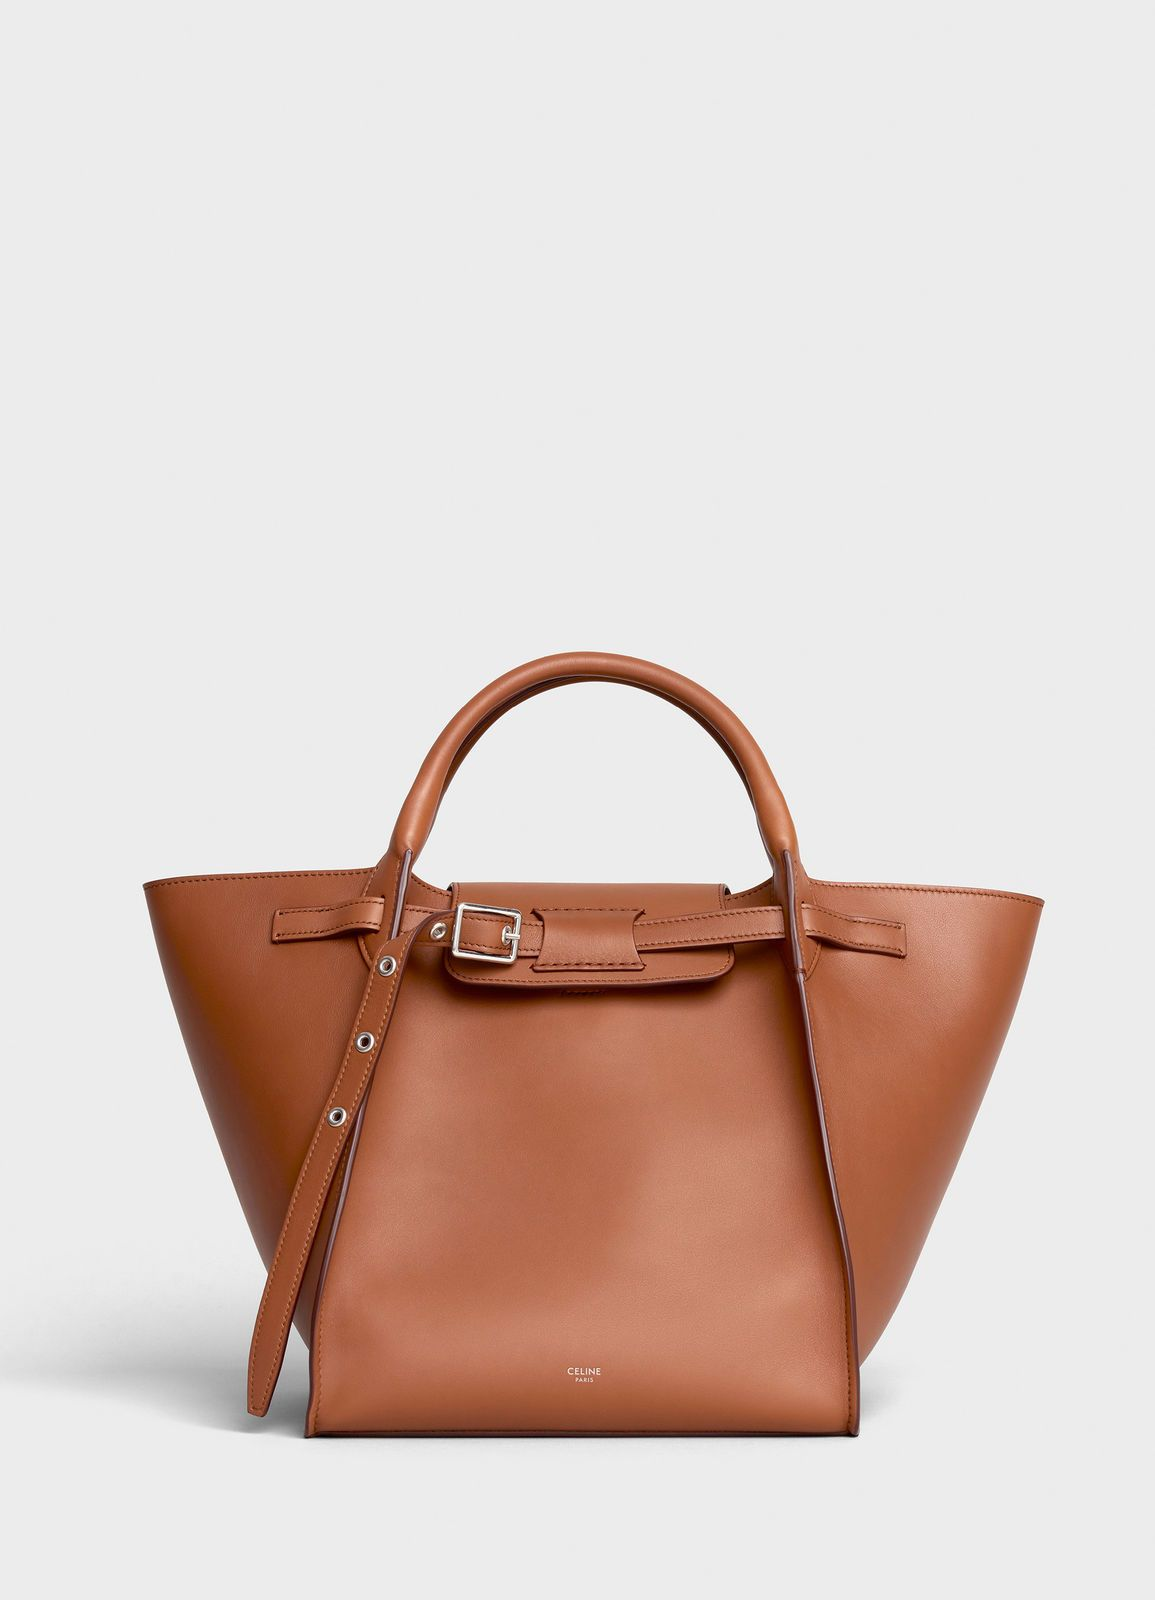 925b9511408 Small Big Bag with long strap in smooth calfskin   CELINE - see large  version in the first place